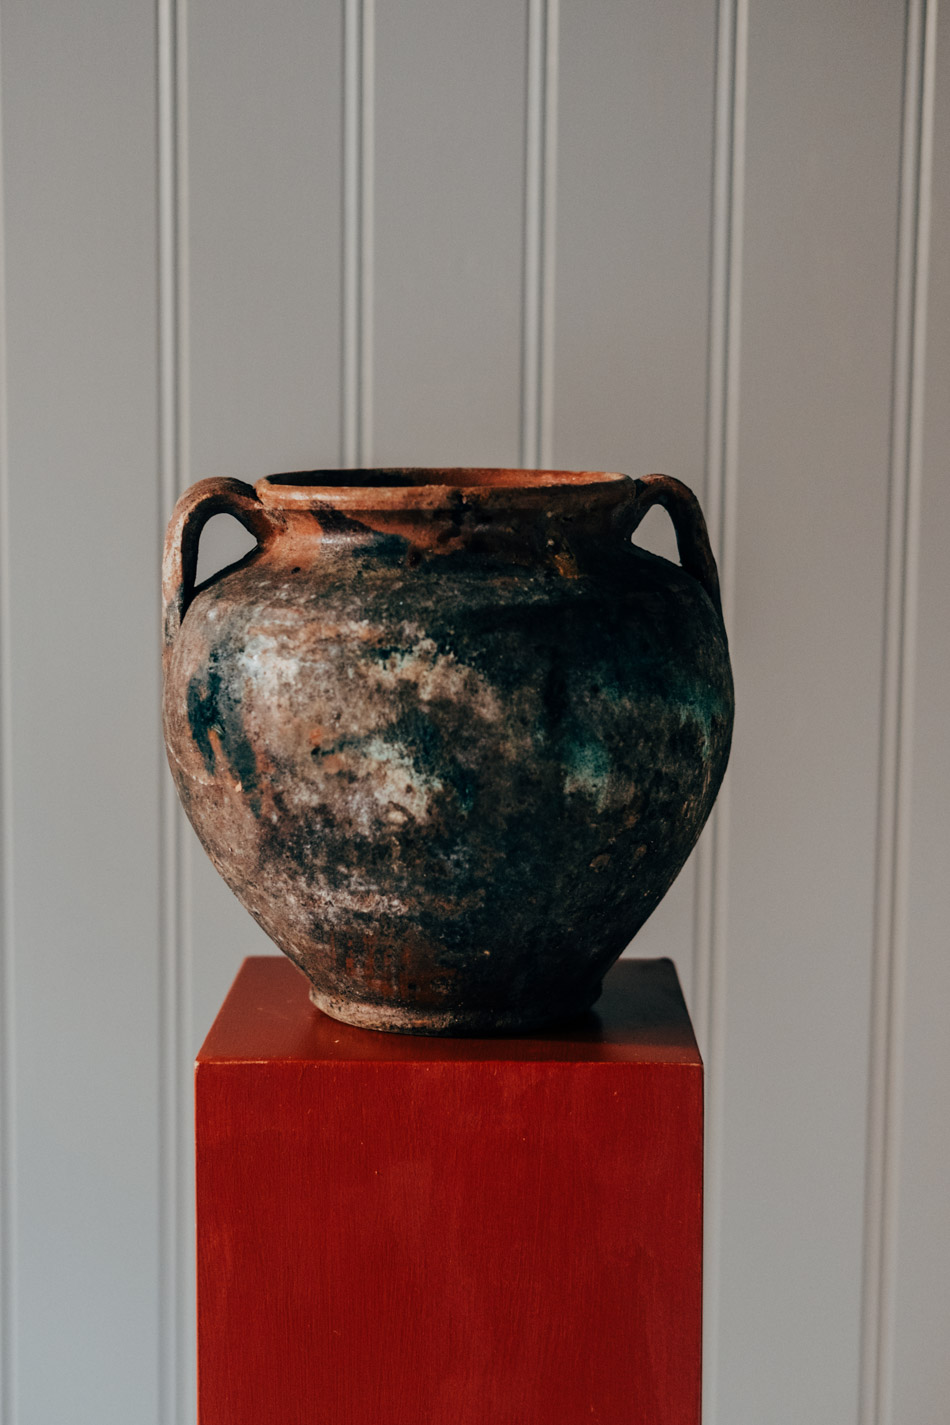 Romani Flower Vessel No 01